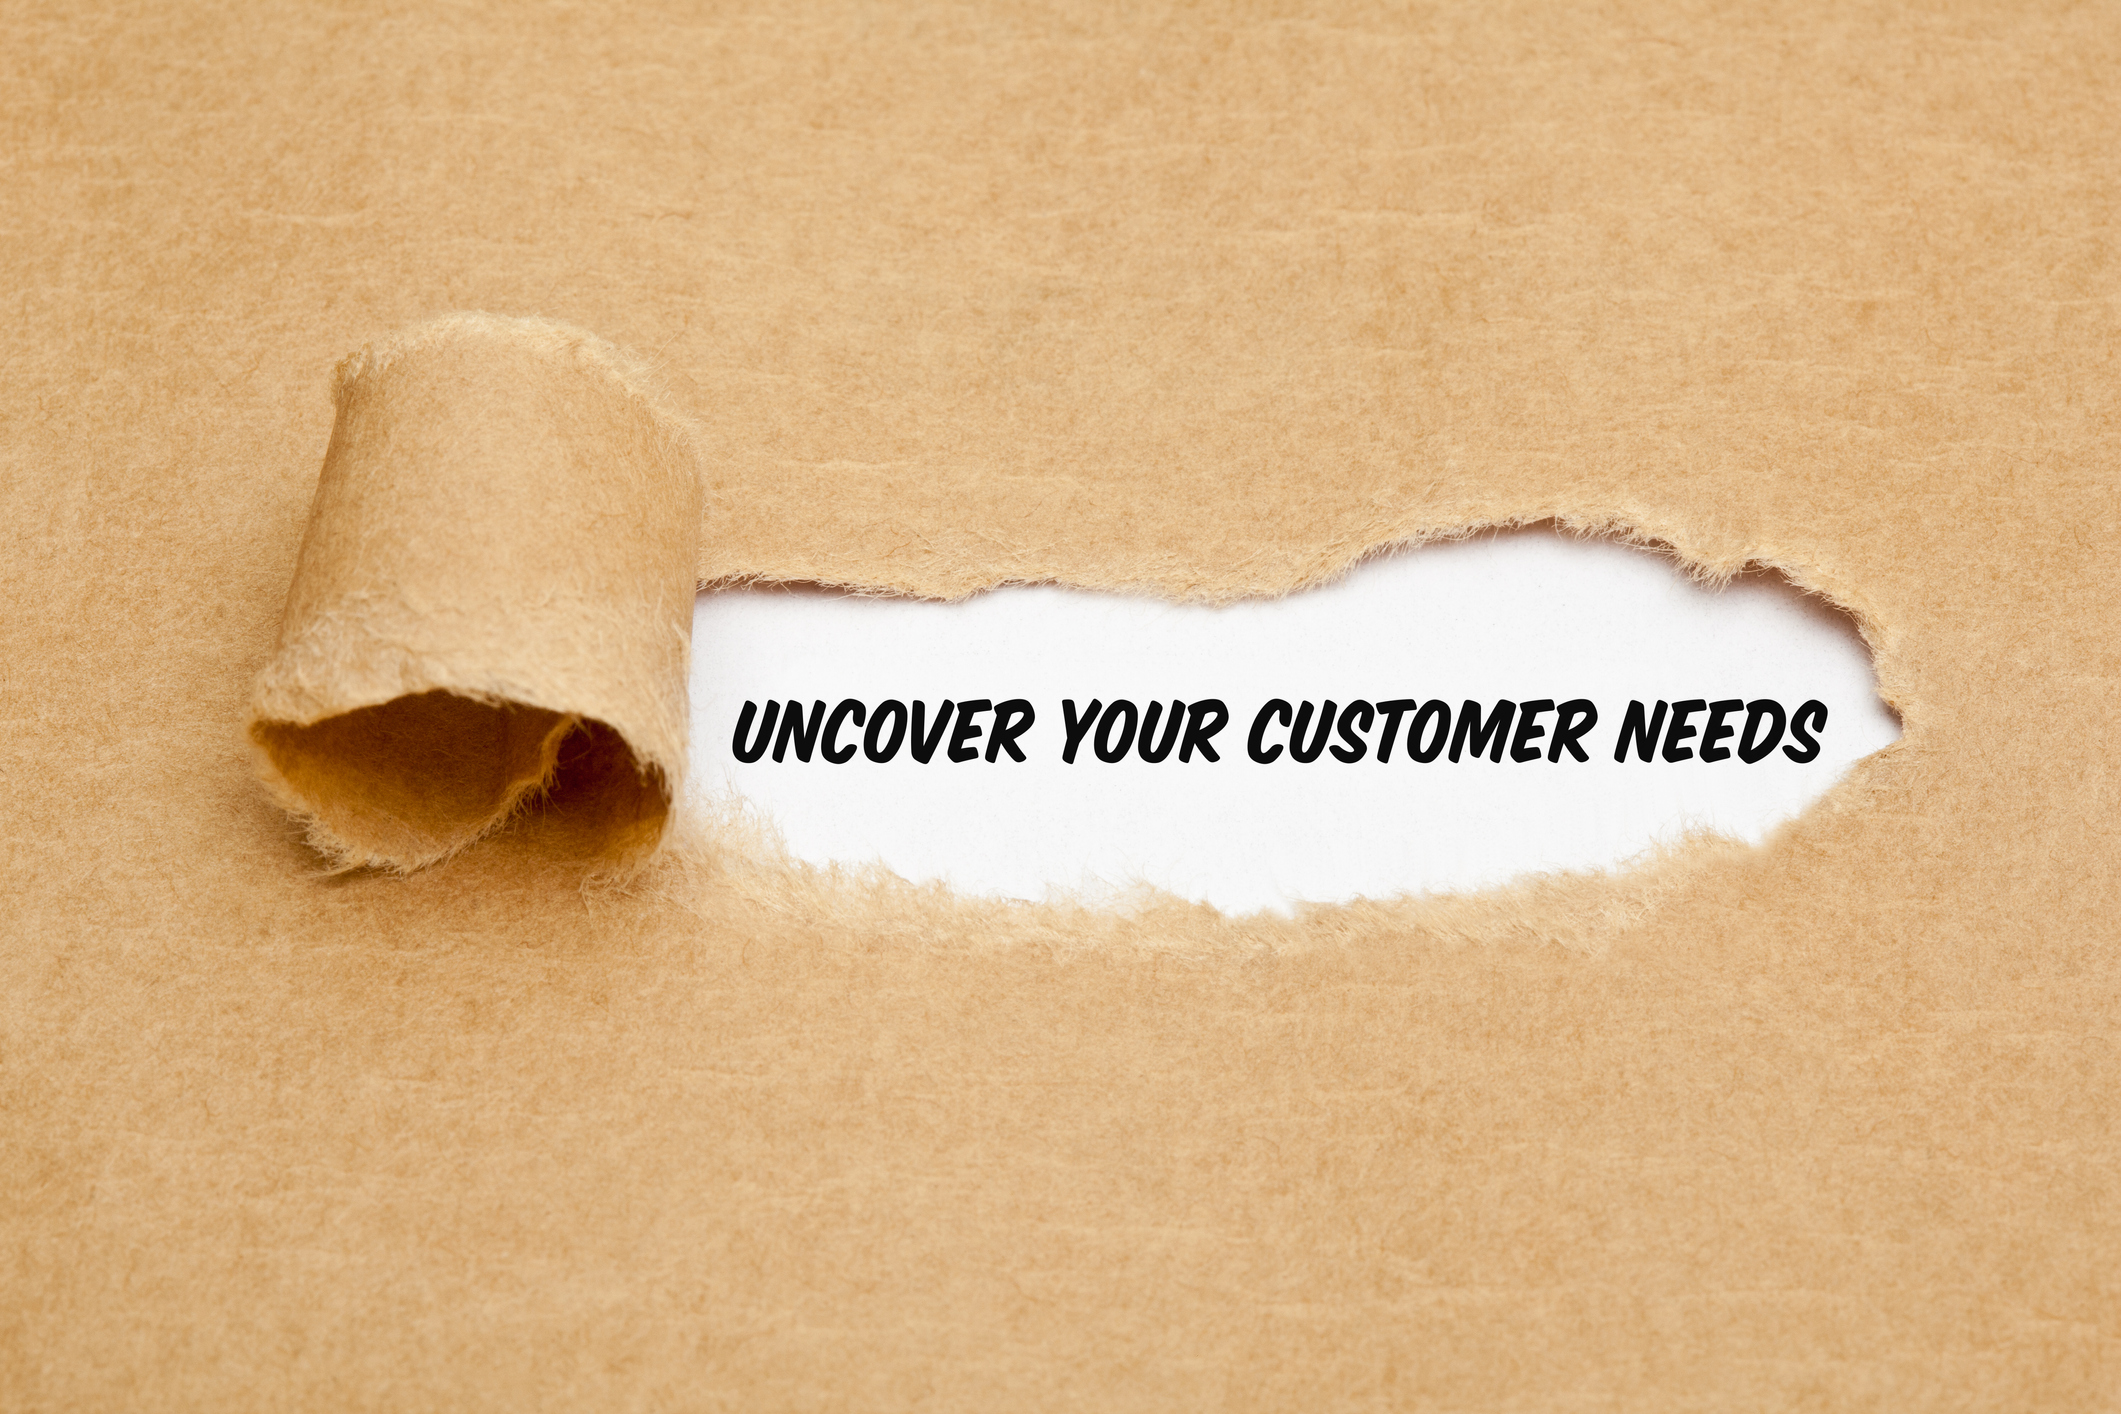 iStock 1131234390 uncover your customer needs